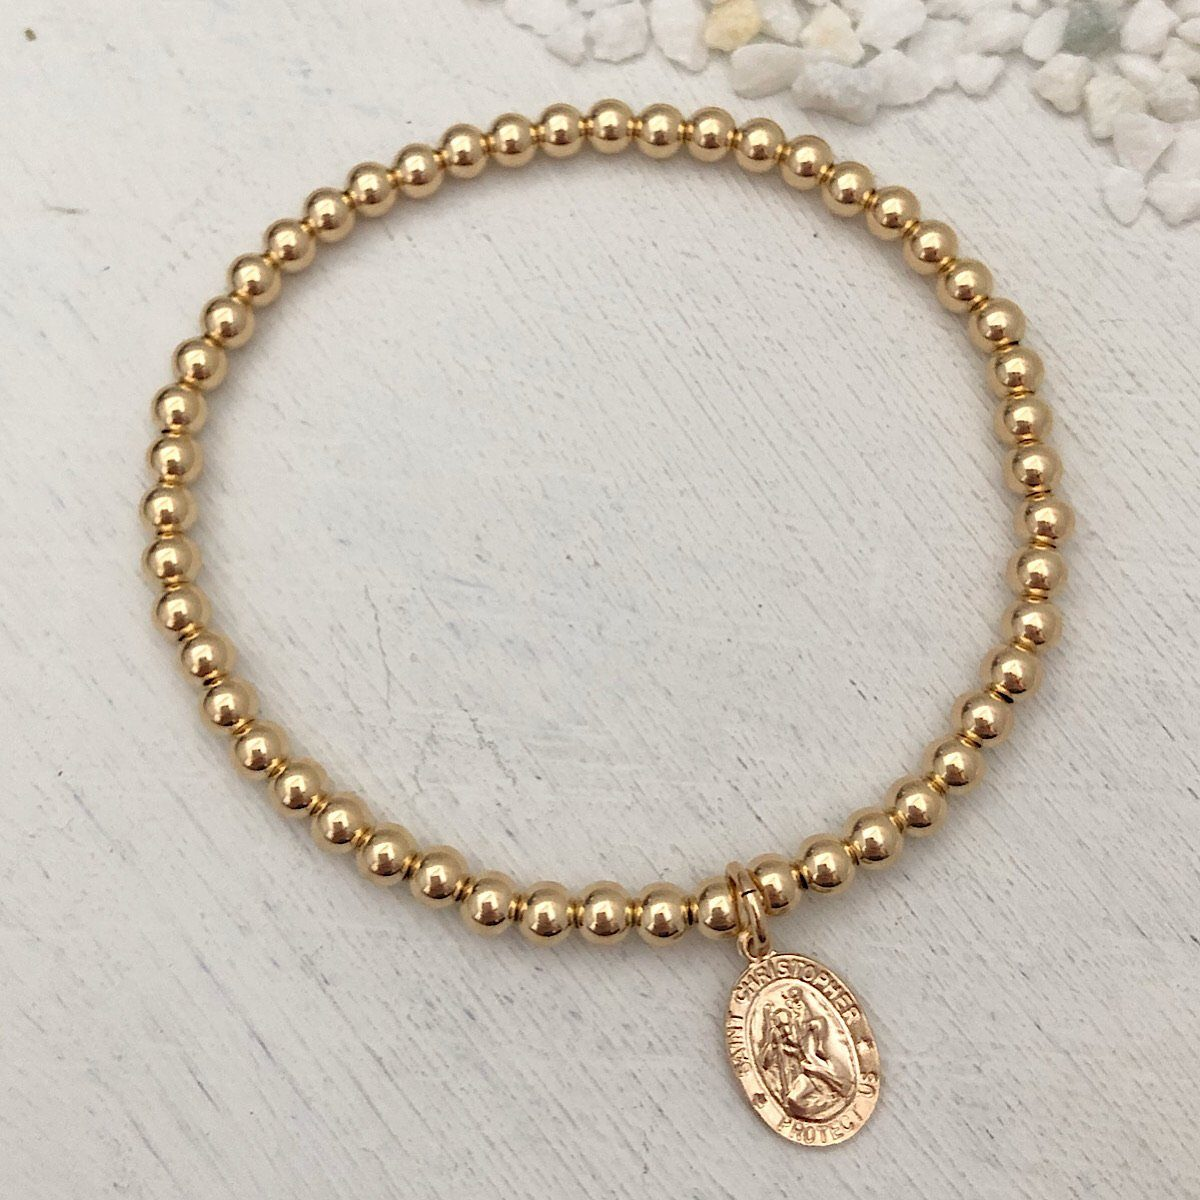 St. Christopher Bead Bracelet Gold Fill